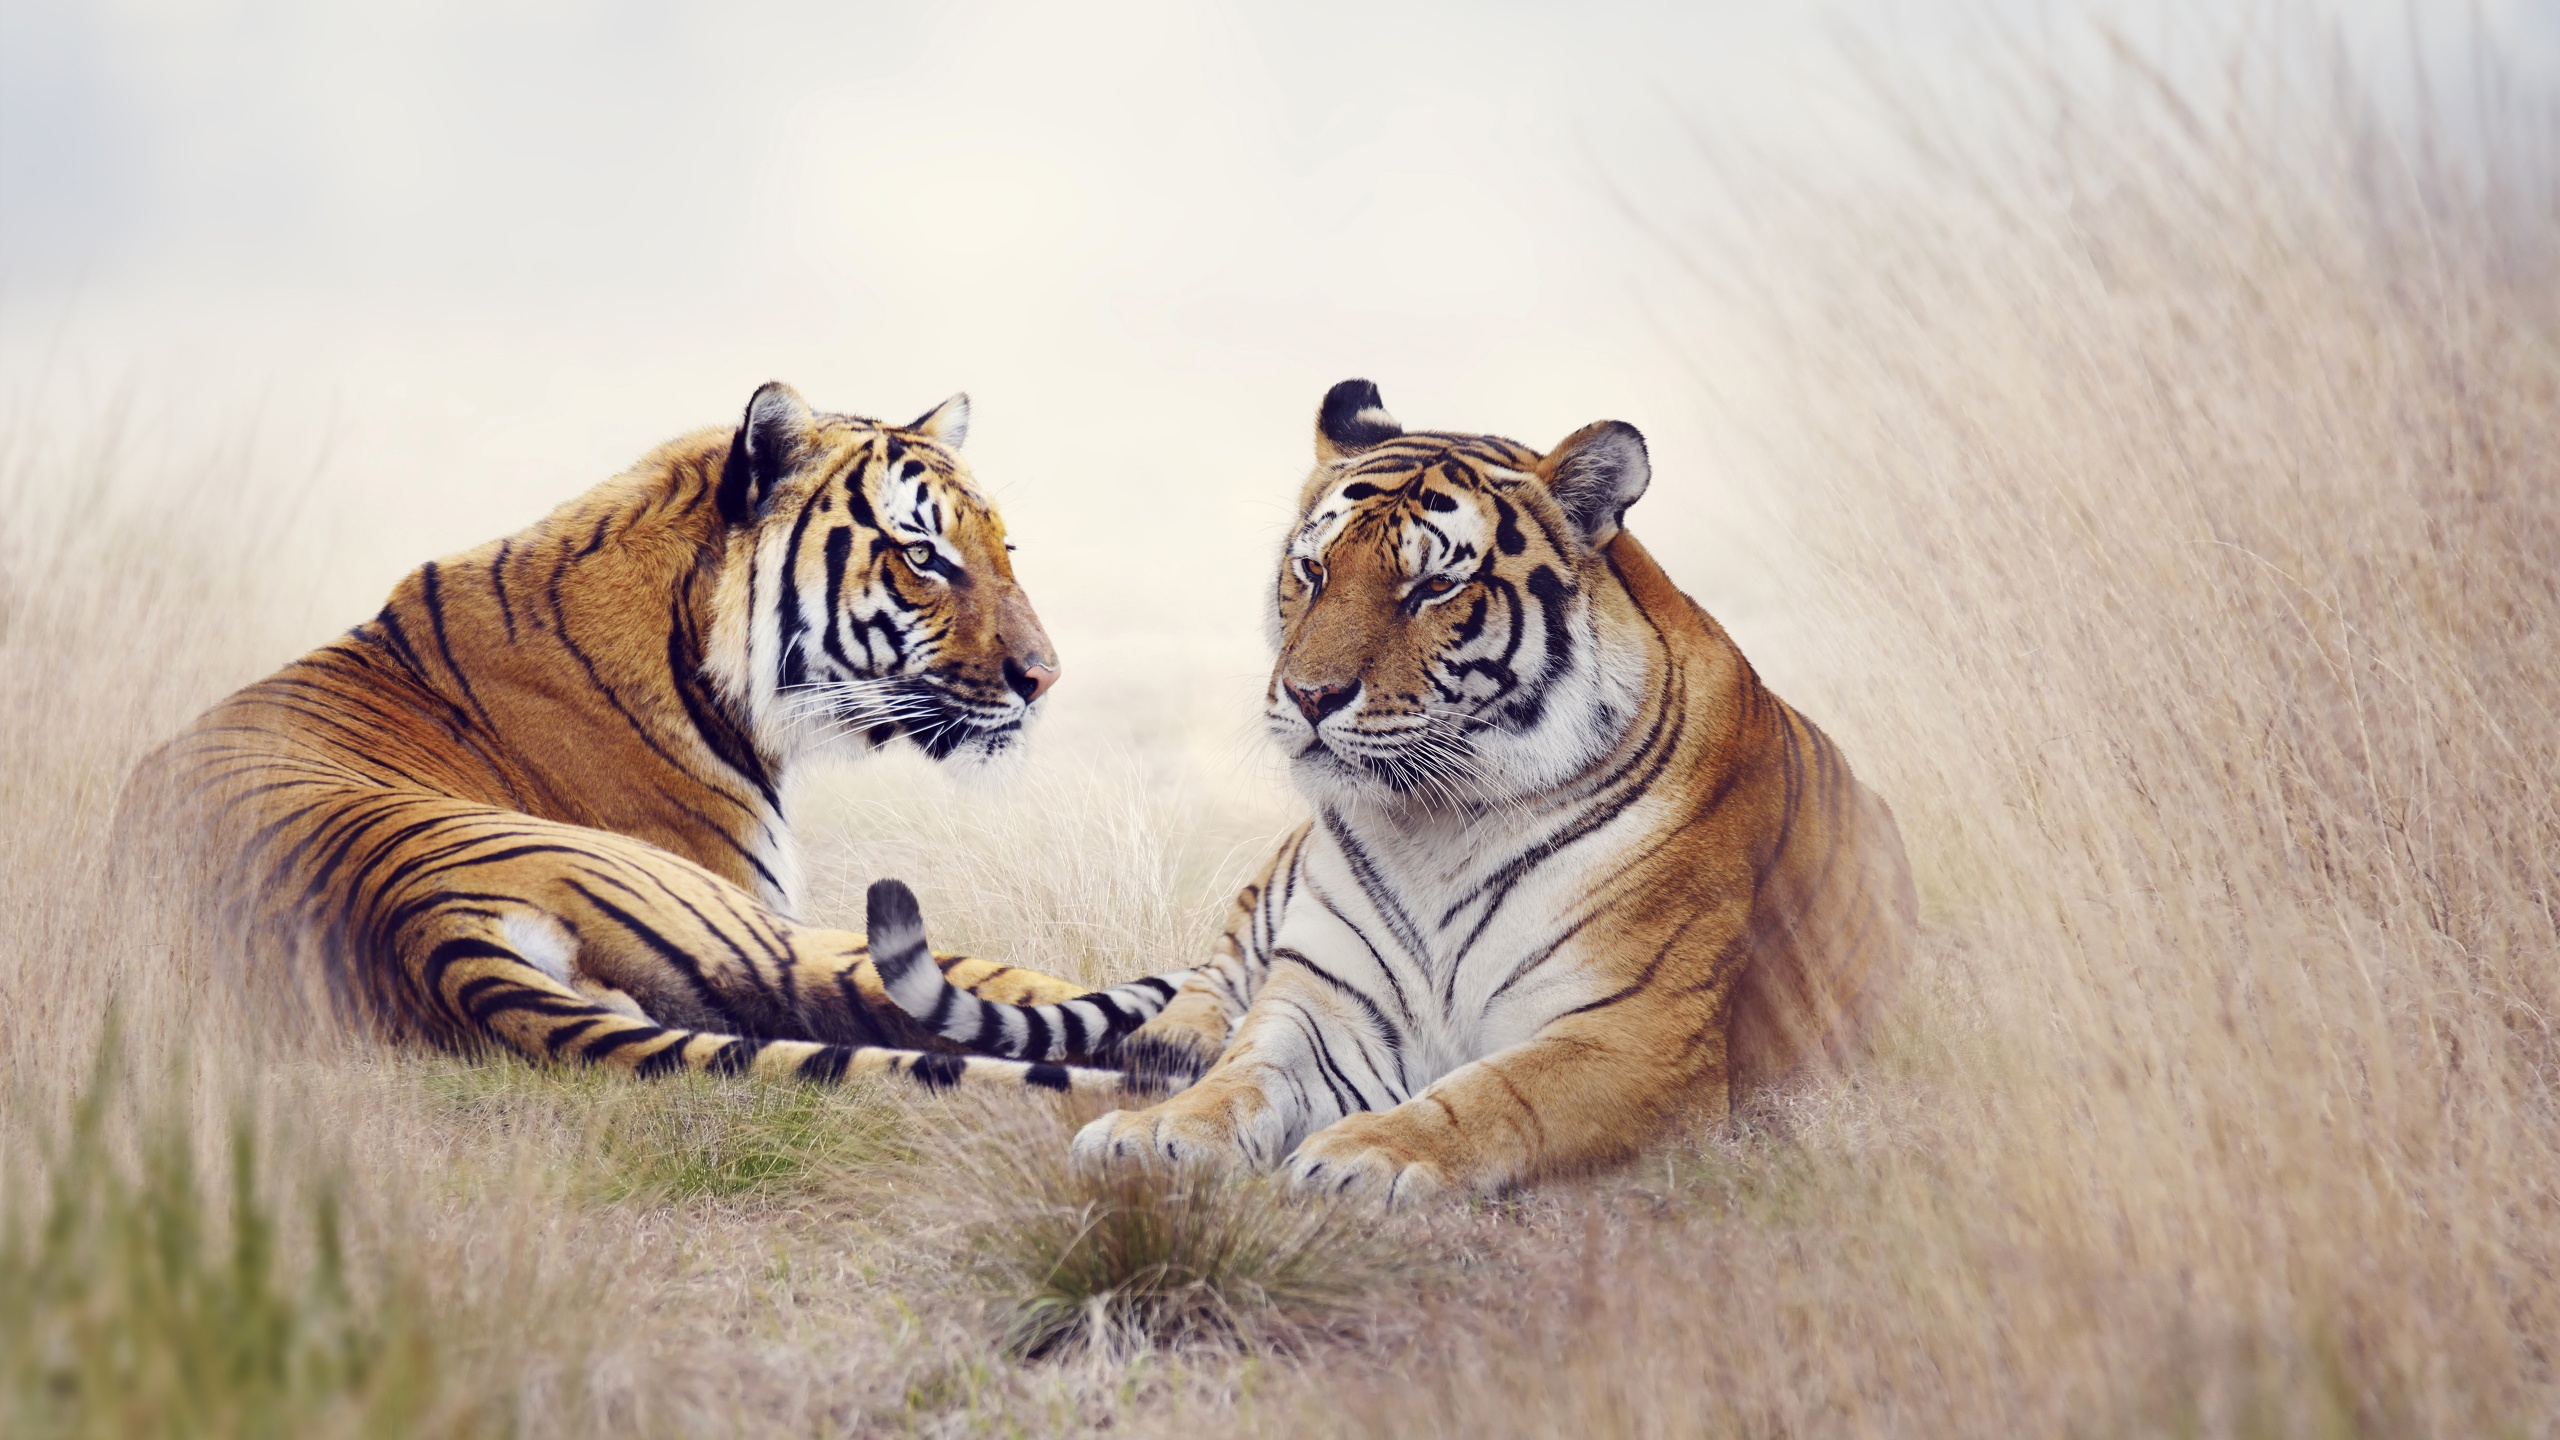 Tiger Pair 5k Wallpapers In Jpg Format For Free Download